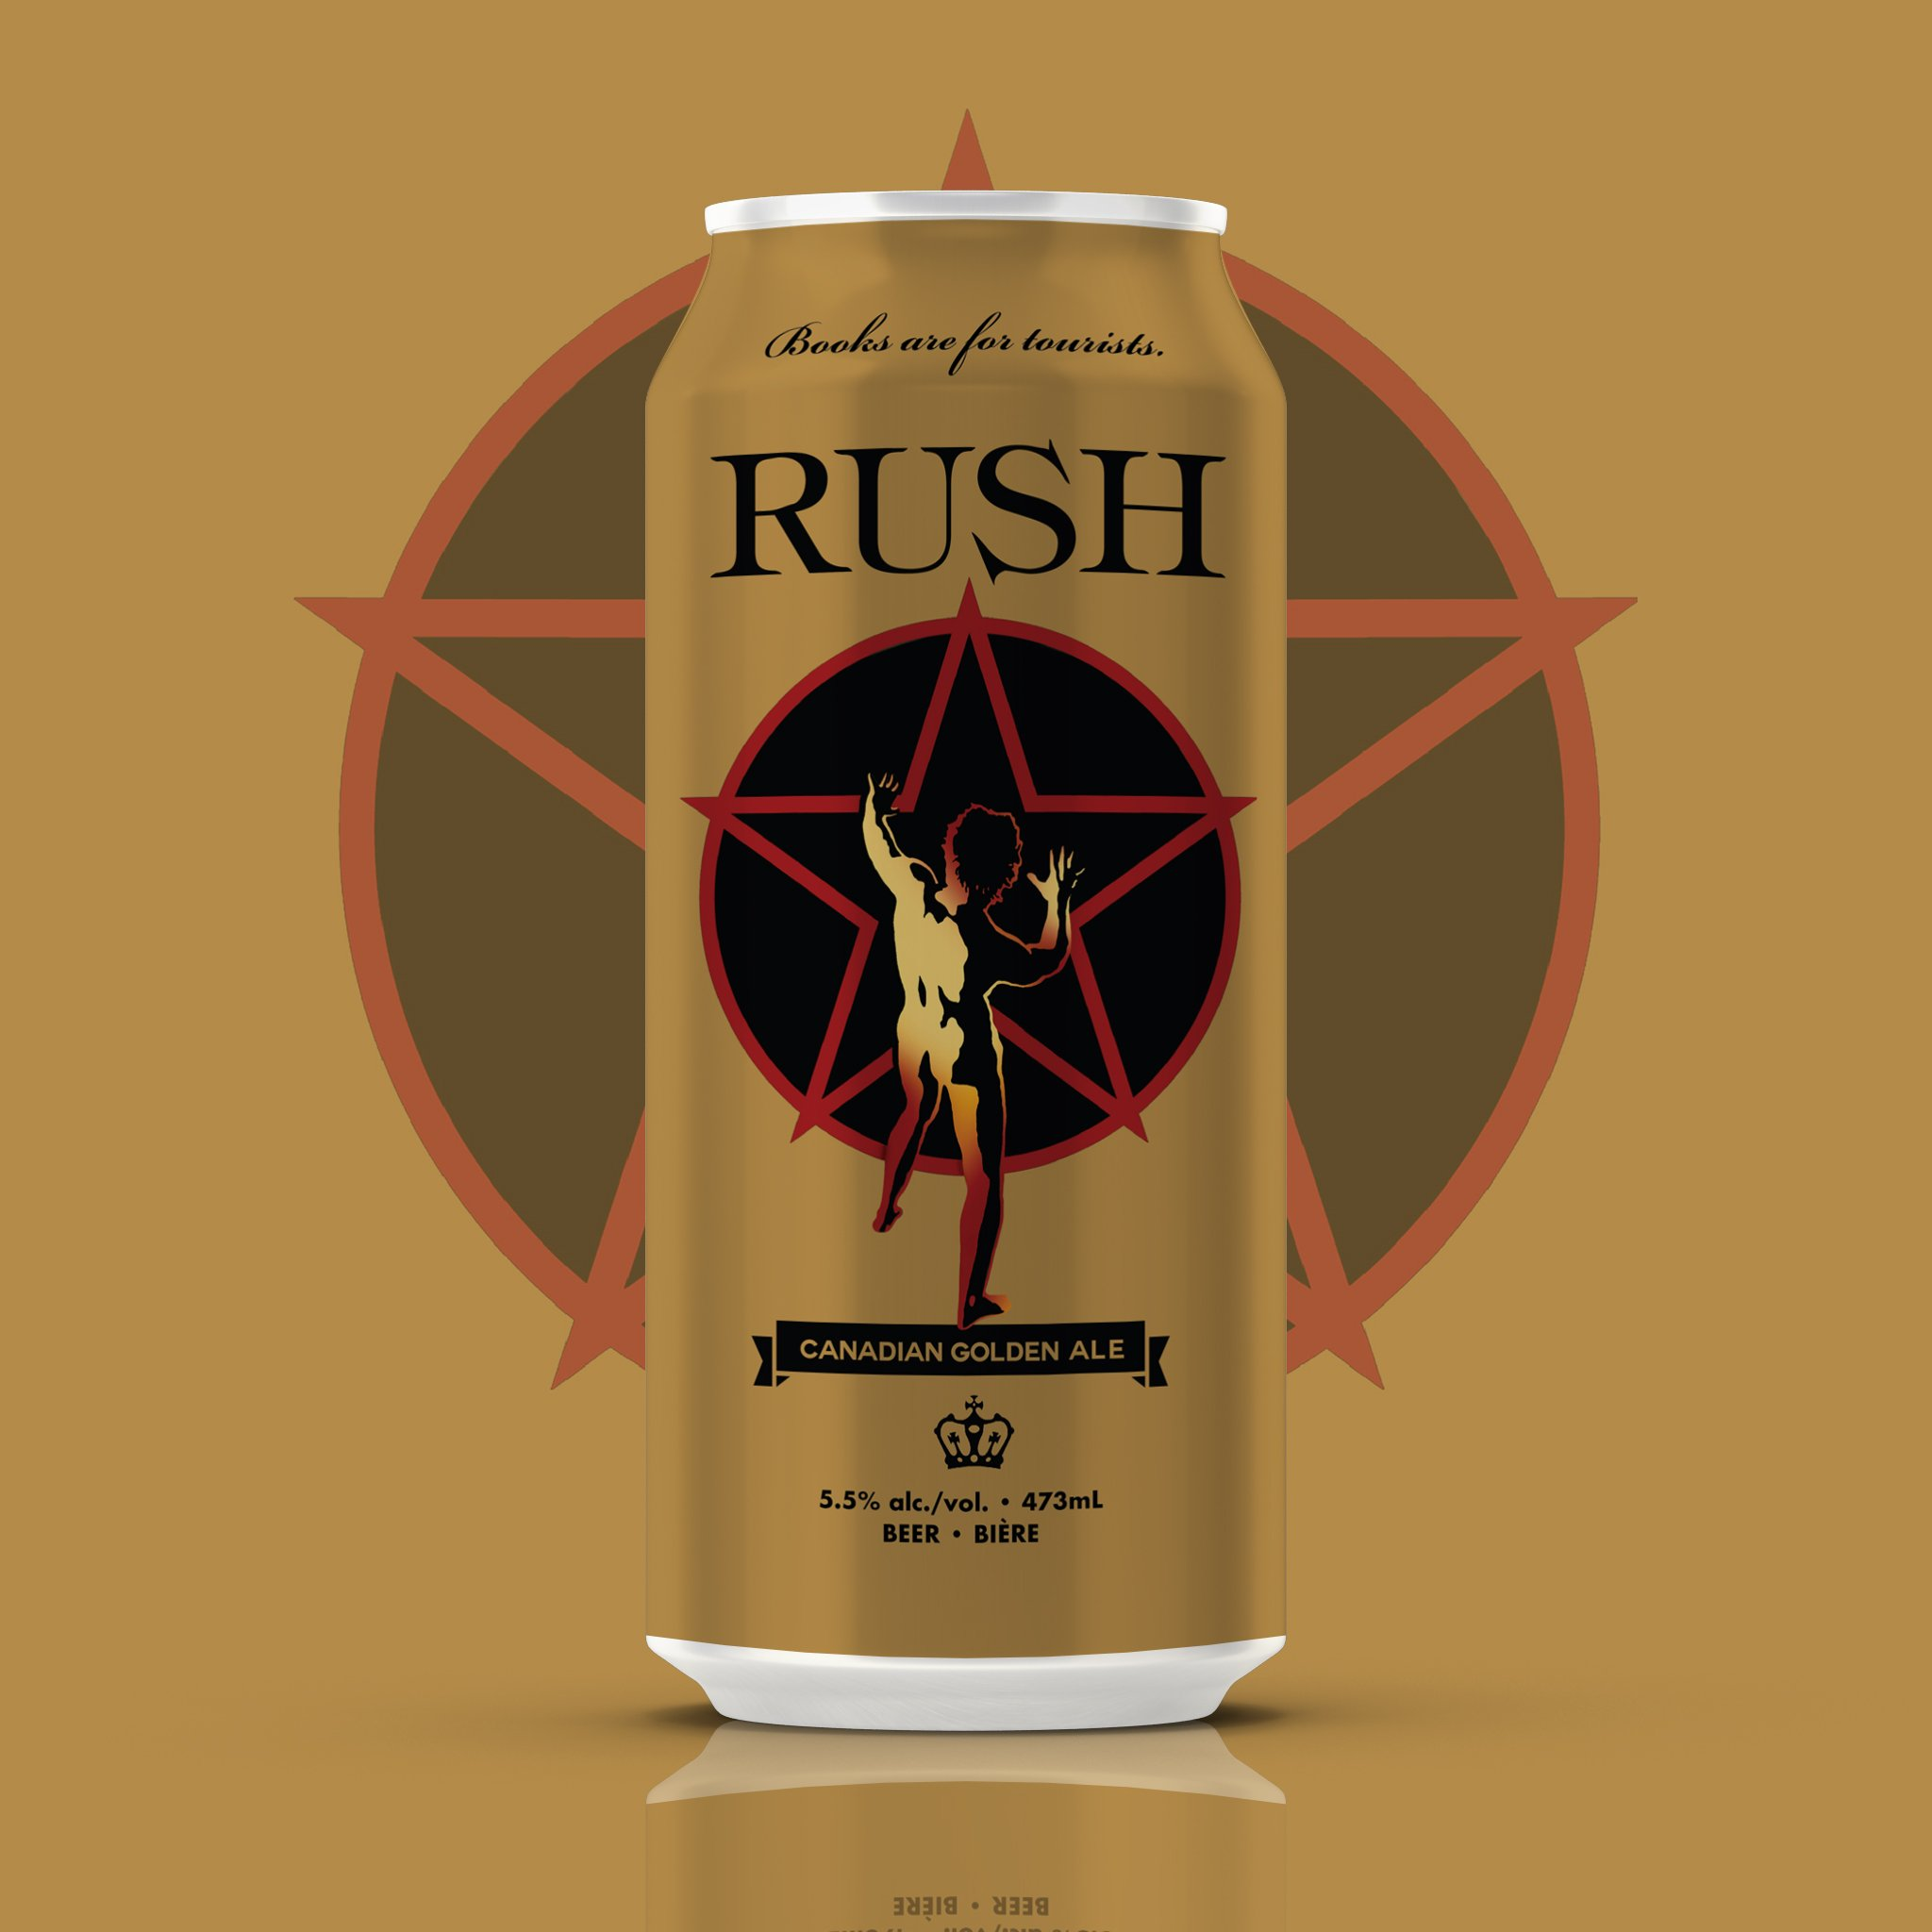 Rush beer can design in gold